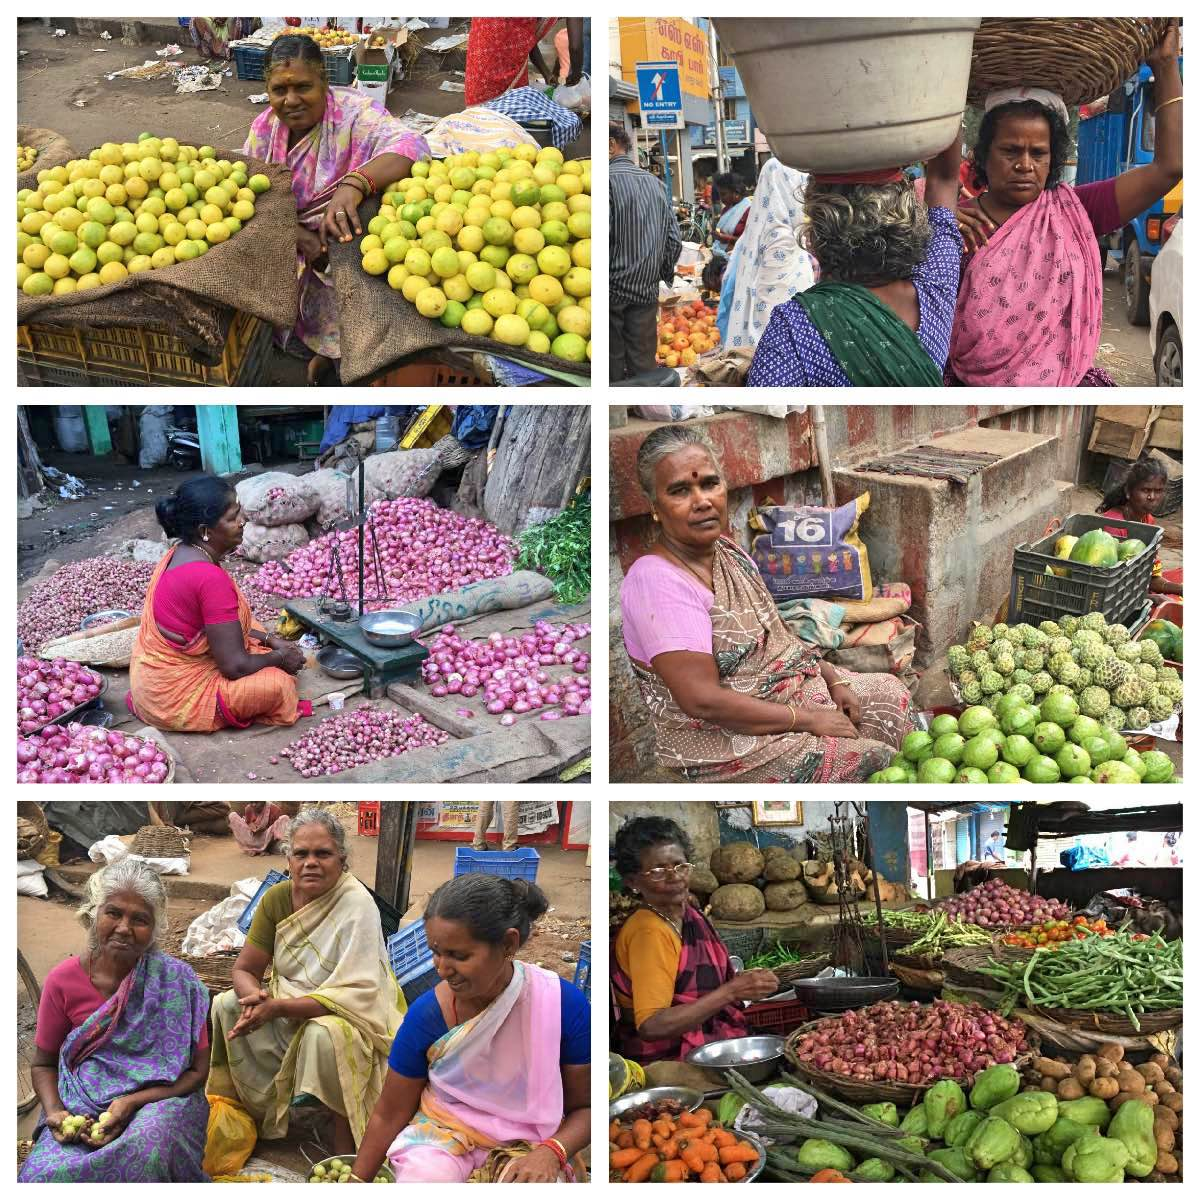 The ladies of Madurai Market